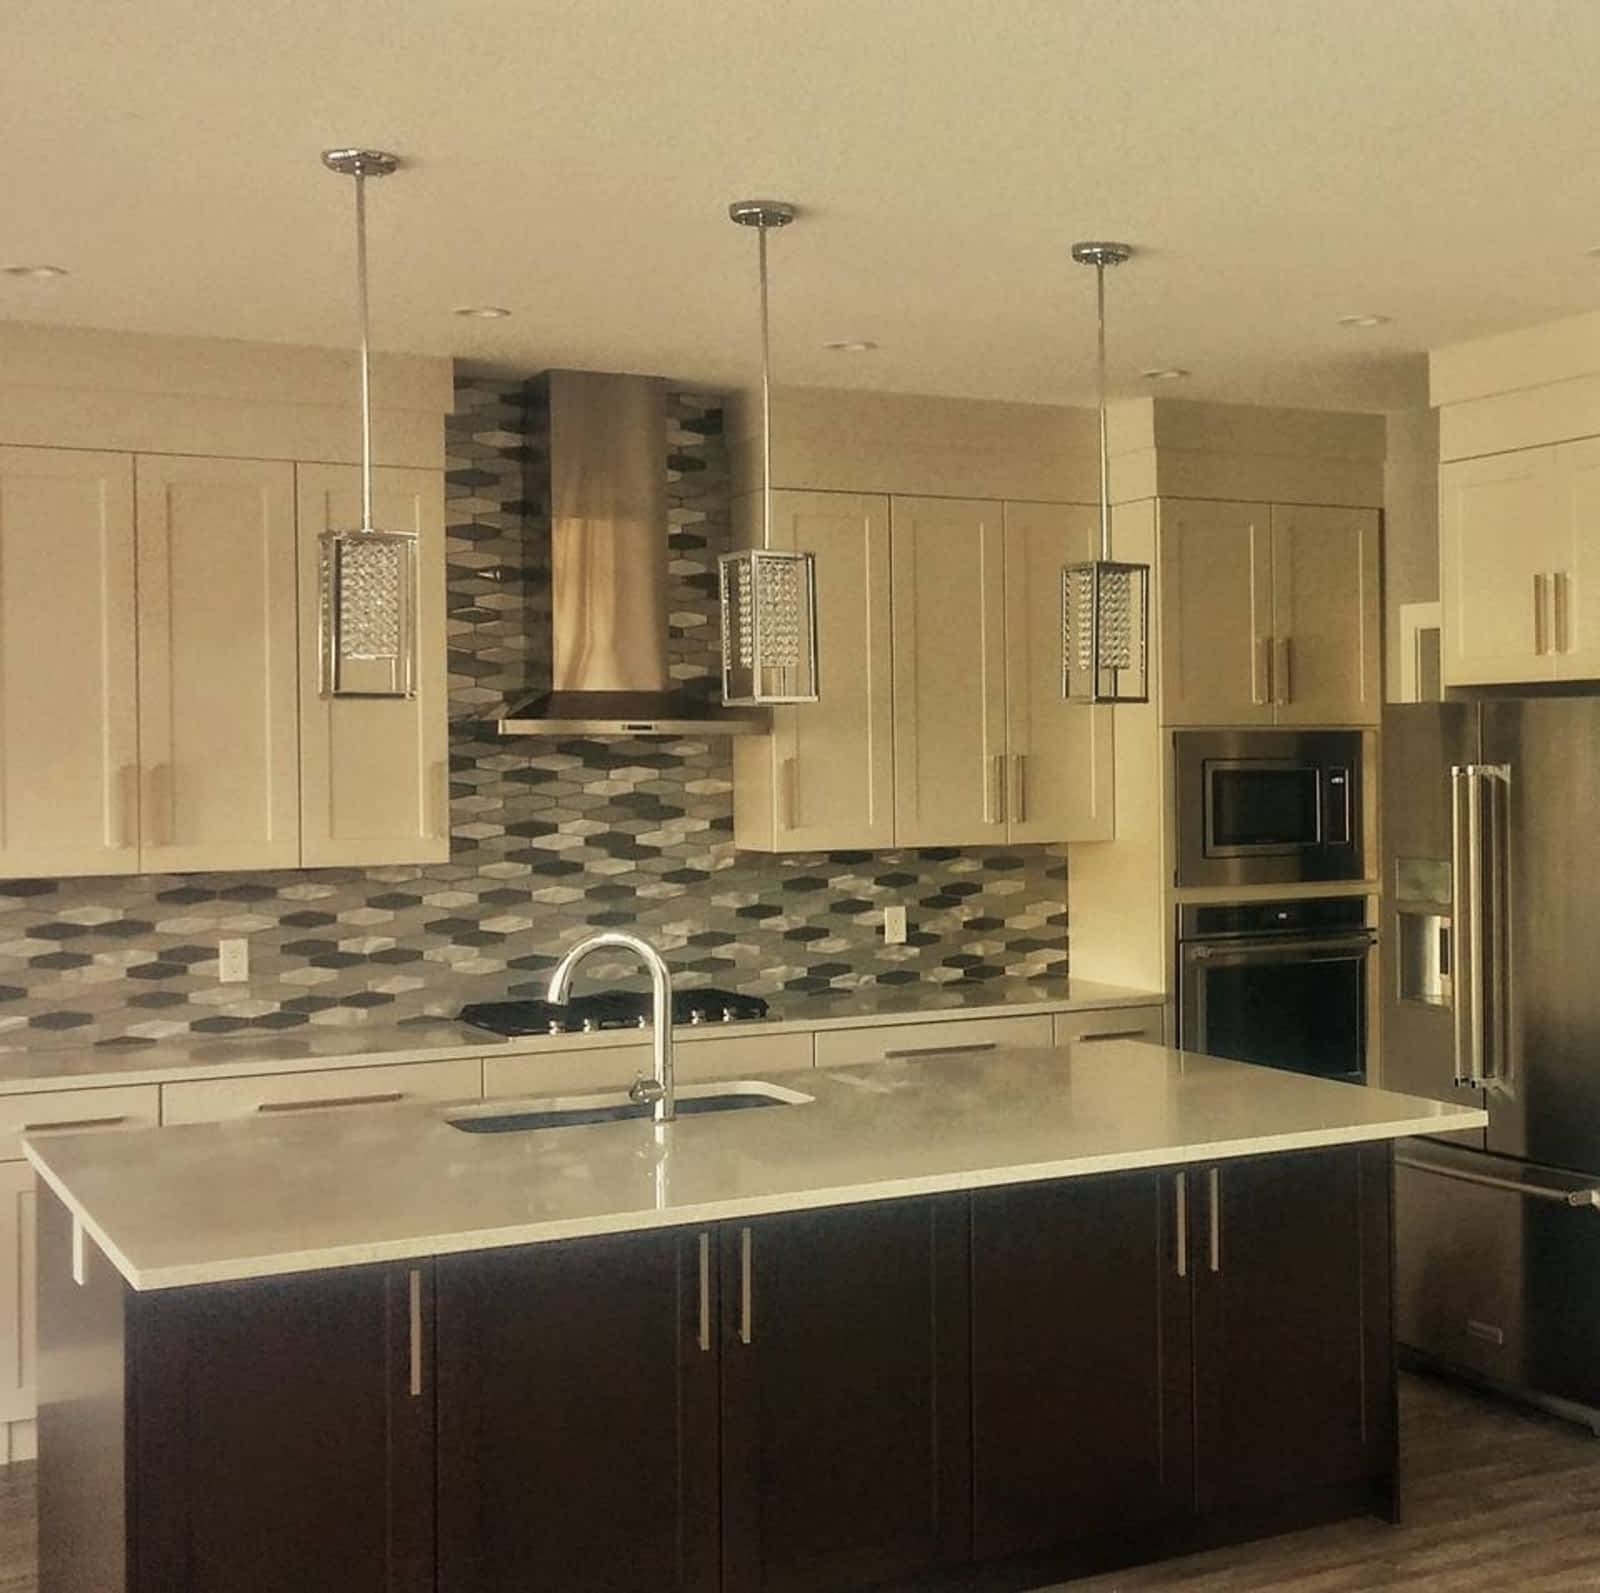 designs remodel island and inc countertops using quartz lowes kitchen marble costco countertop honed with a cabinets